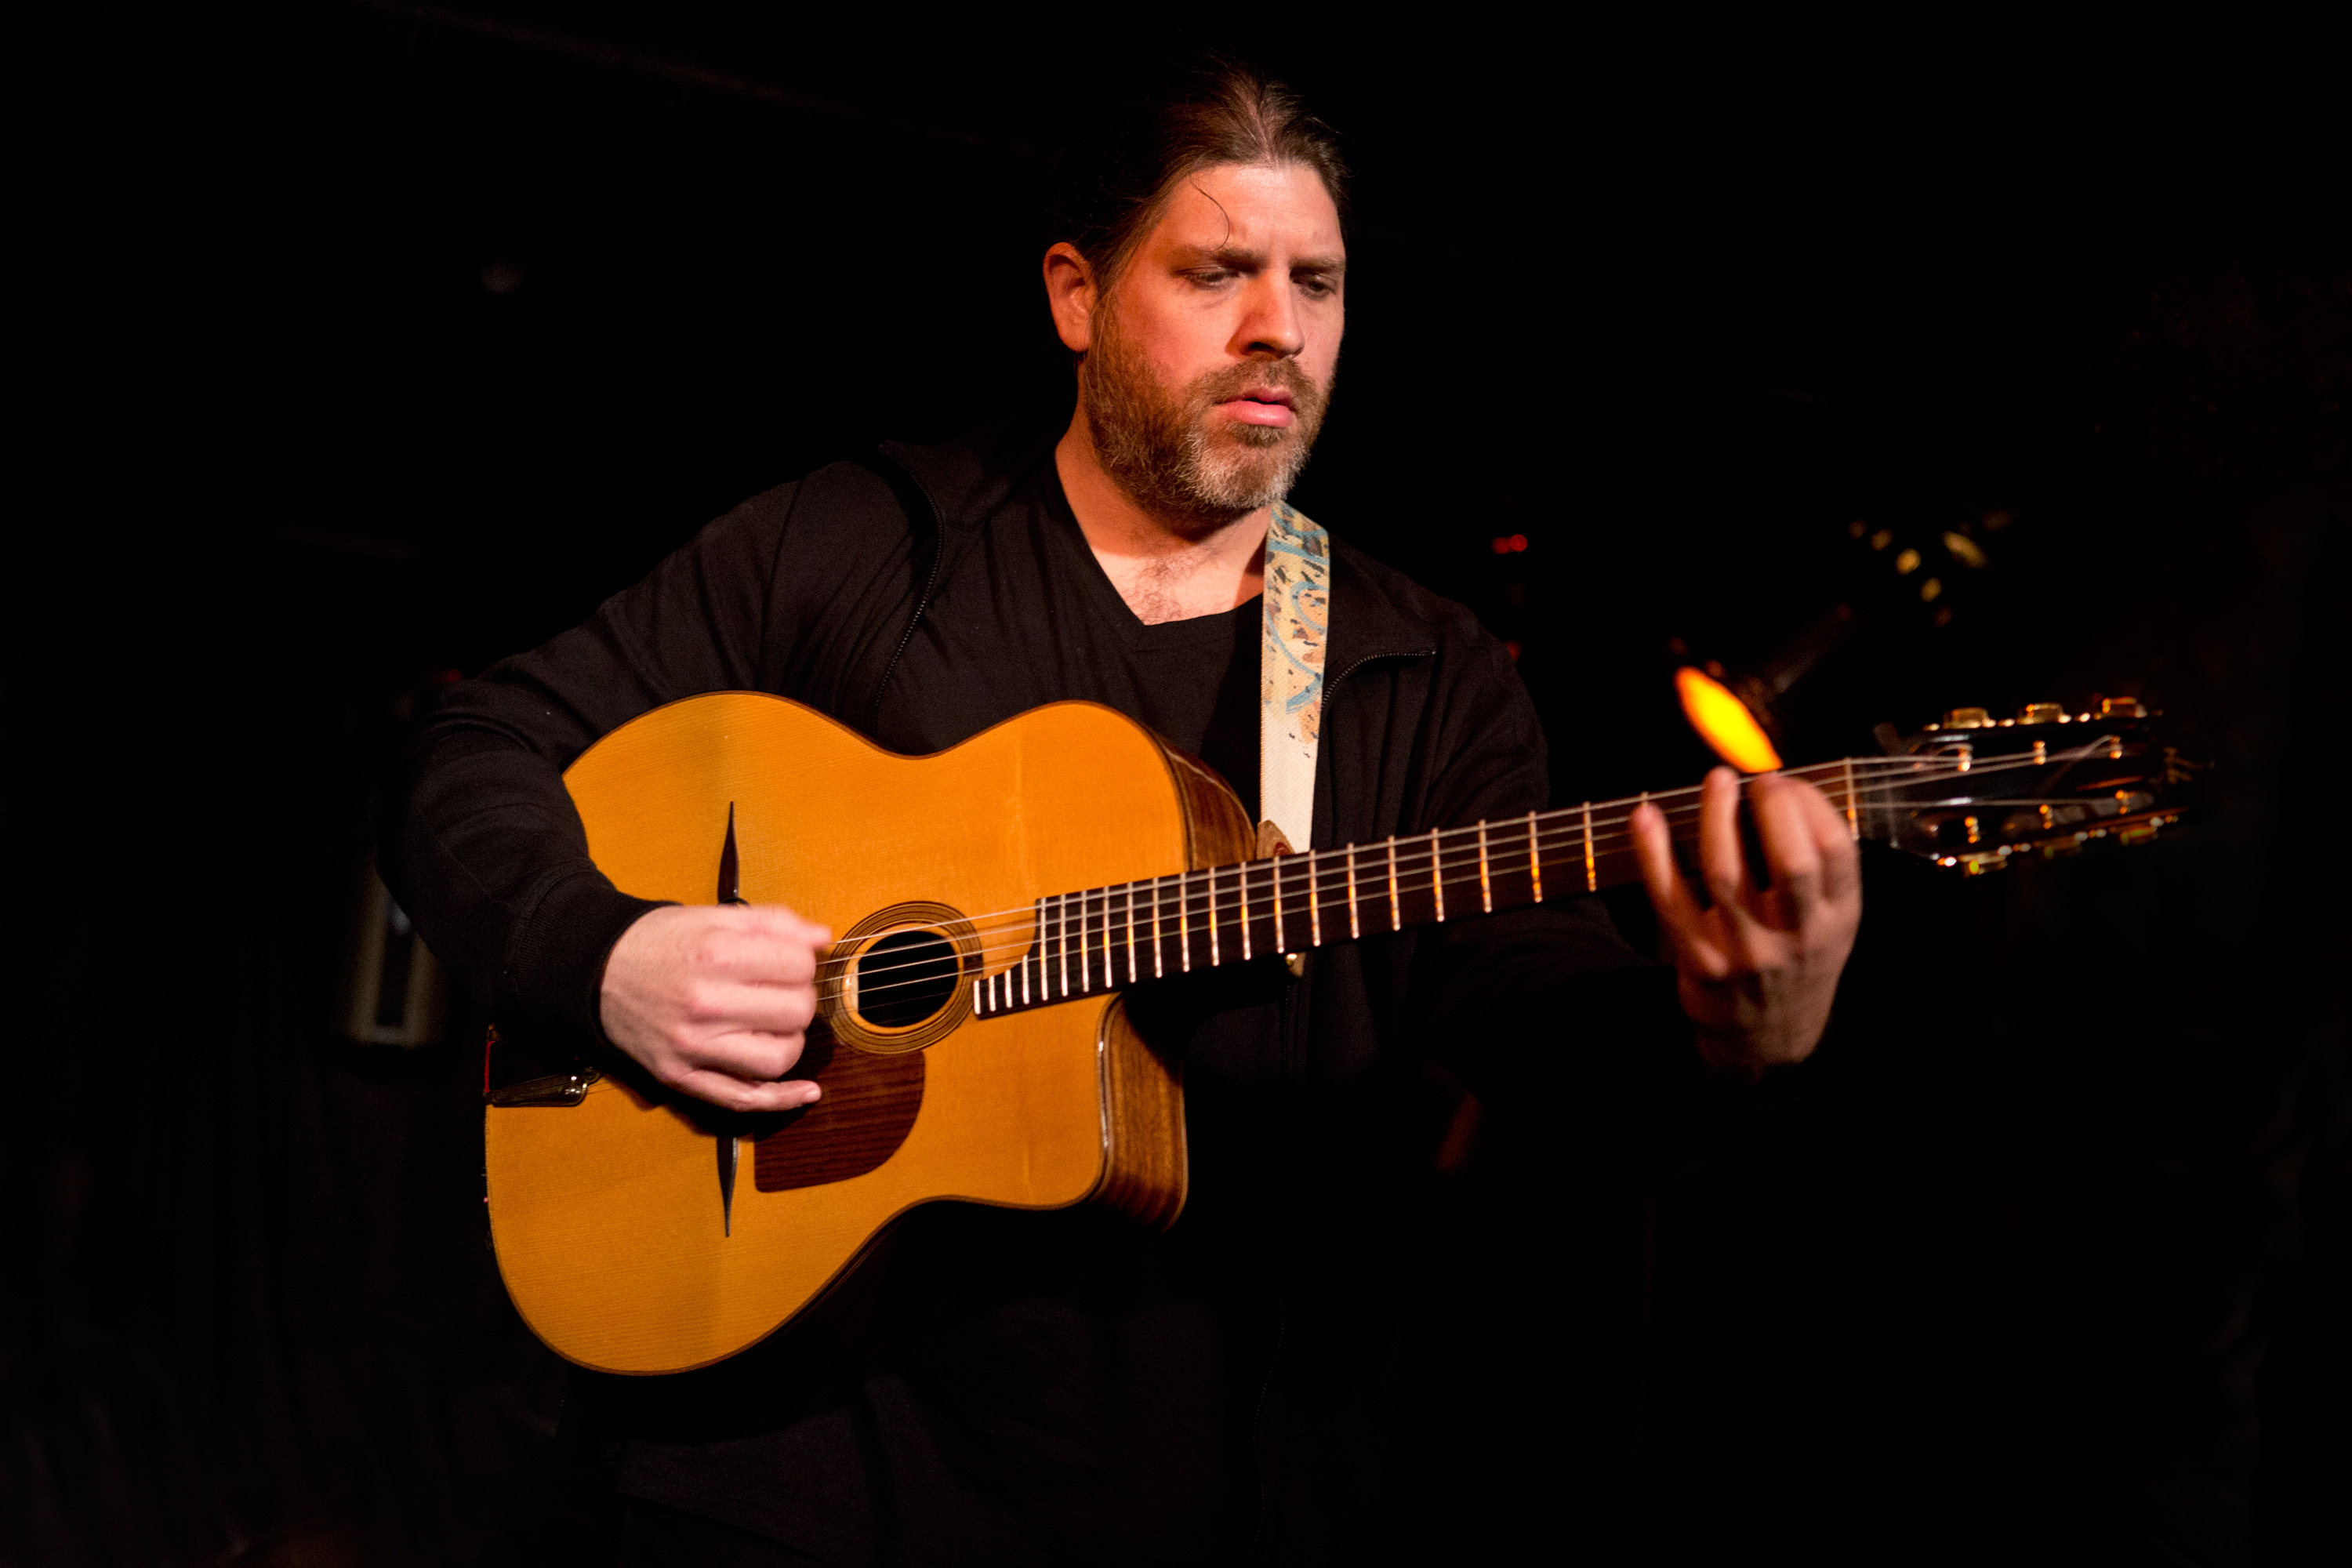 "Acclaimed French-born guitarist and composer Stephane Wrembel has appeared on the soundtracks of Woody Allen's Vicky Cristina Barcelona and Midnight In Paris. He dazzled the globalFEST crowds with his ""Gypsy Jazz"" guitar rhythms."